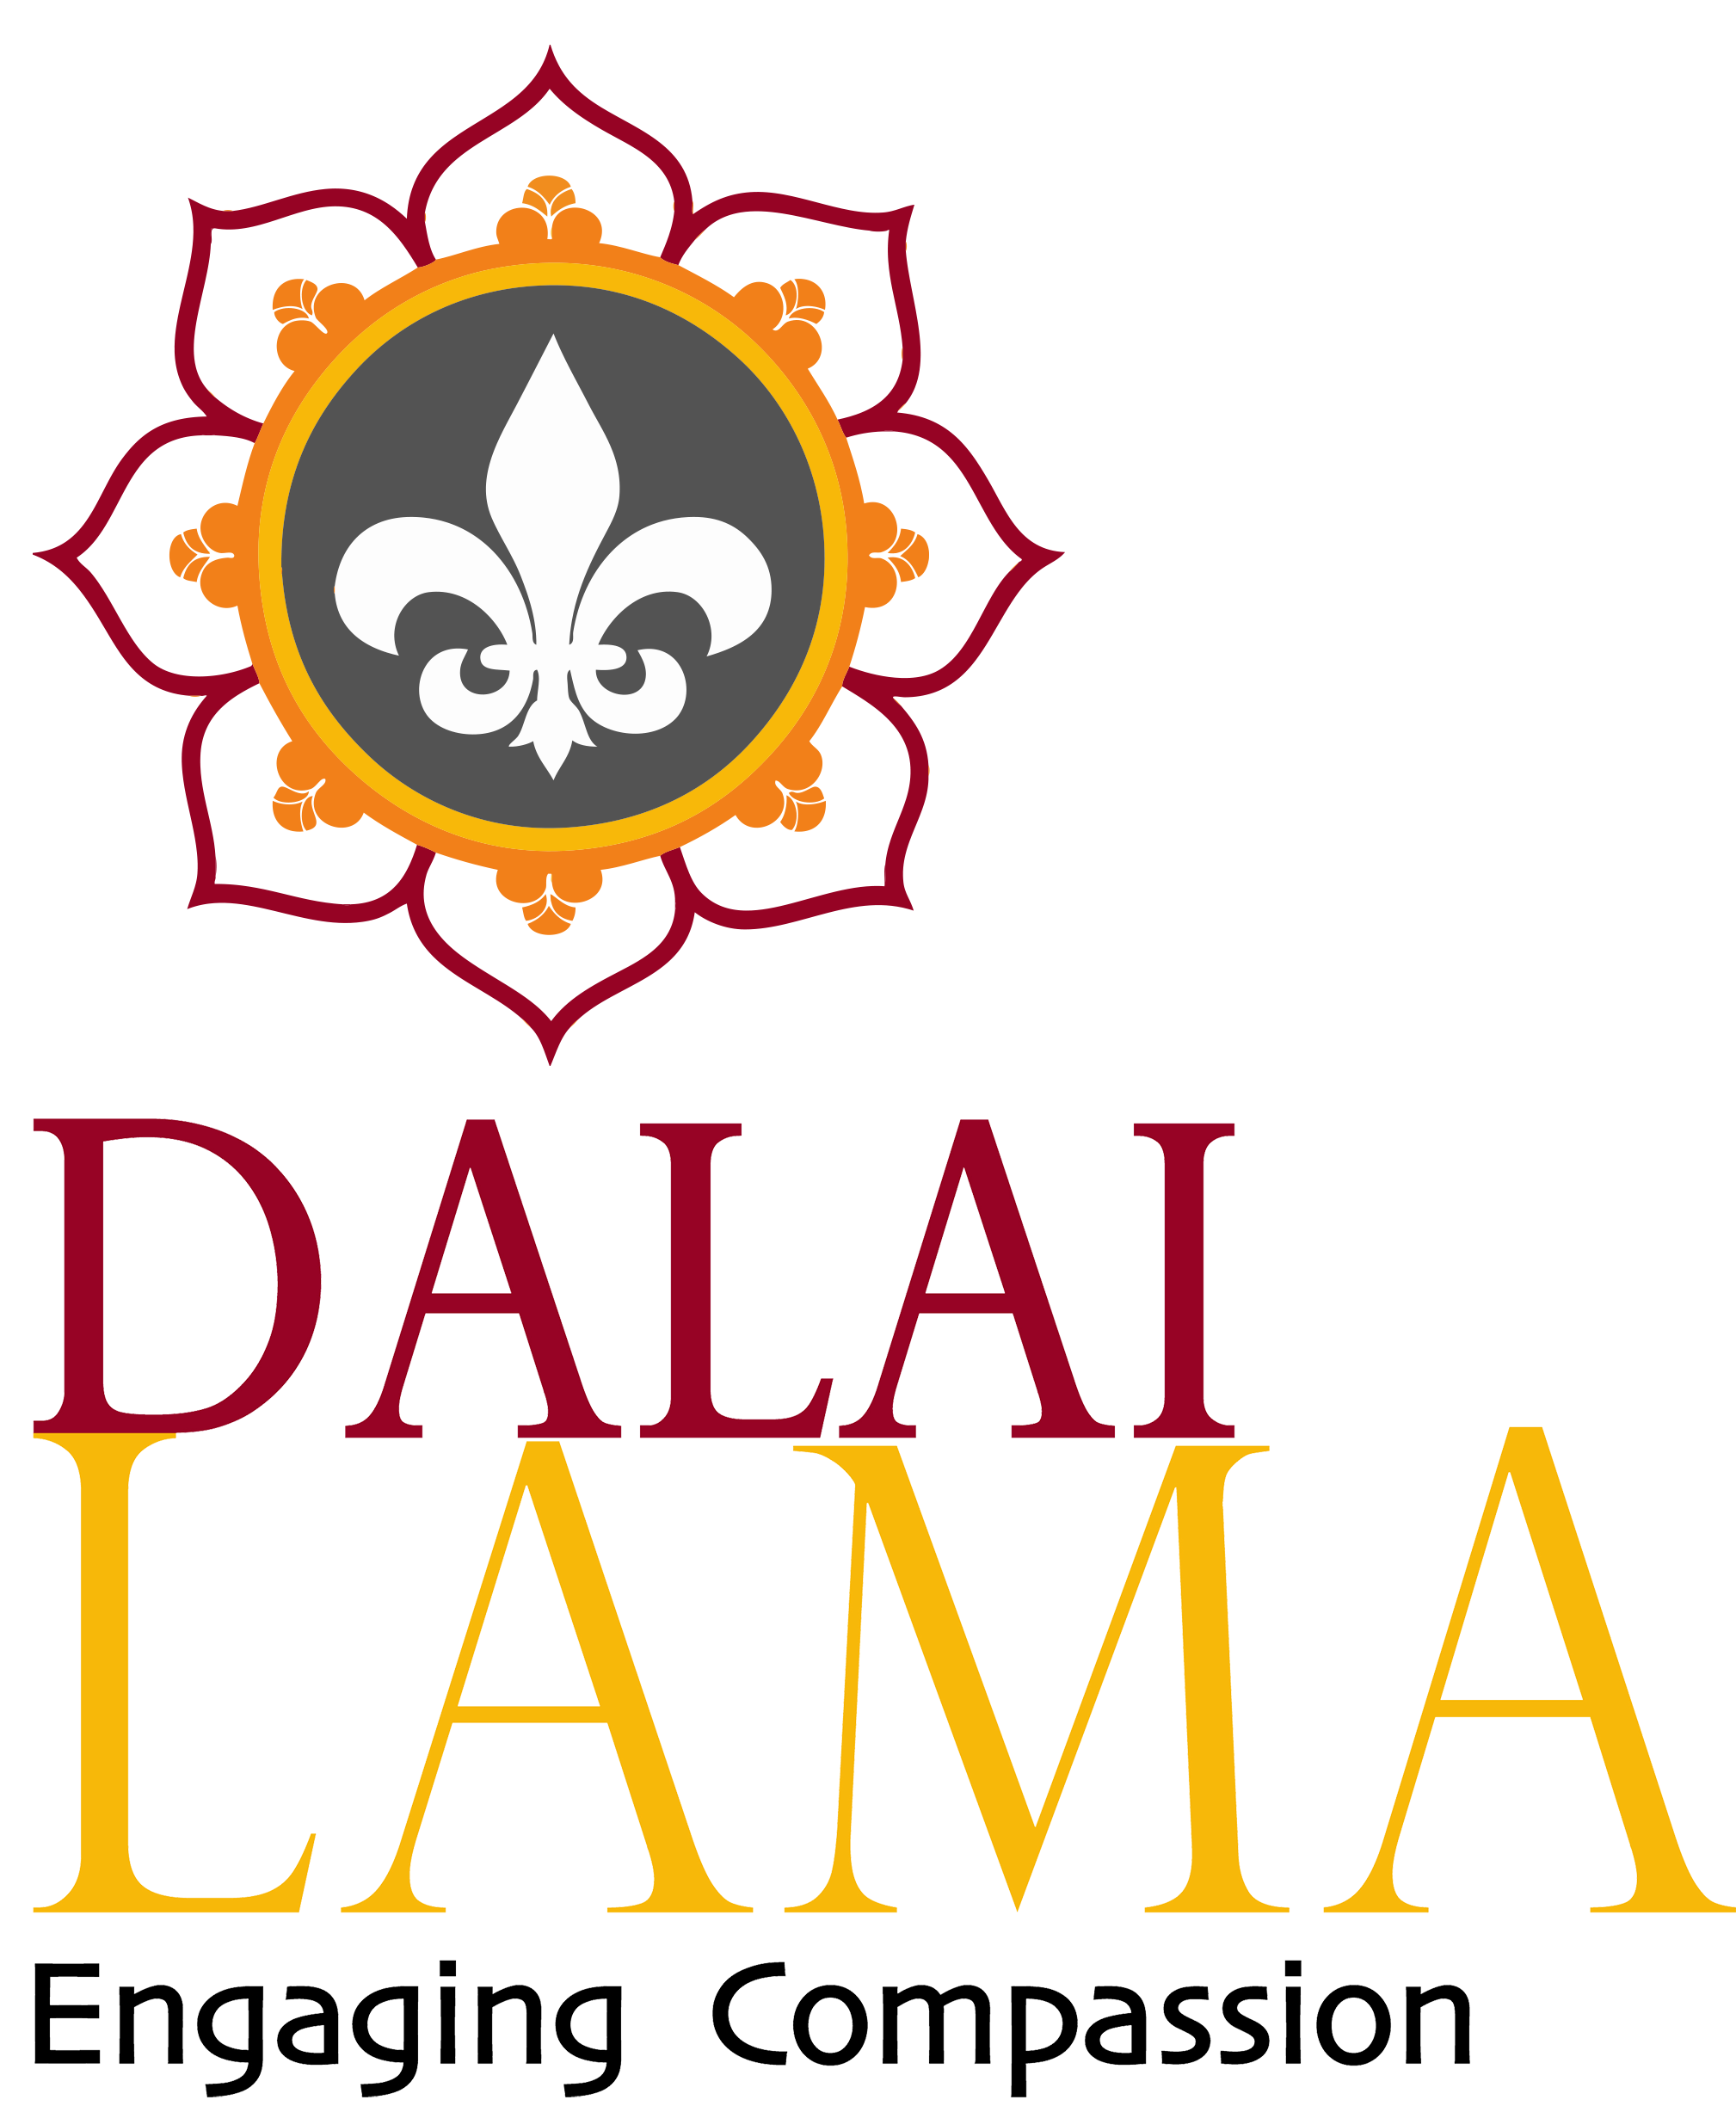 Dalai Lama Engaging Compassion logo